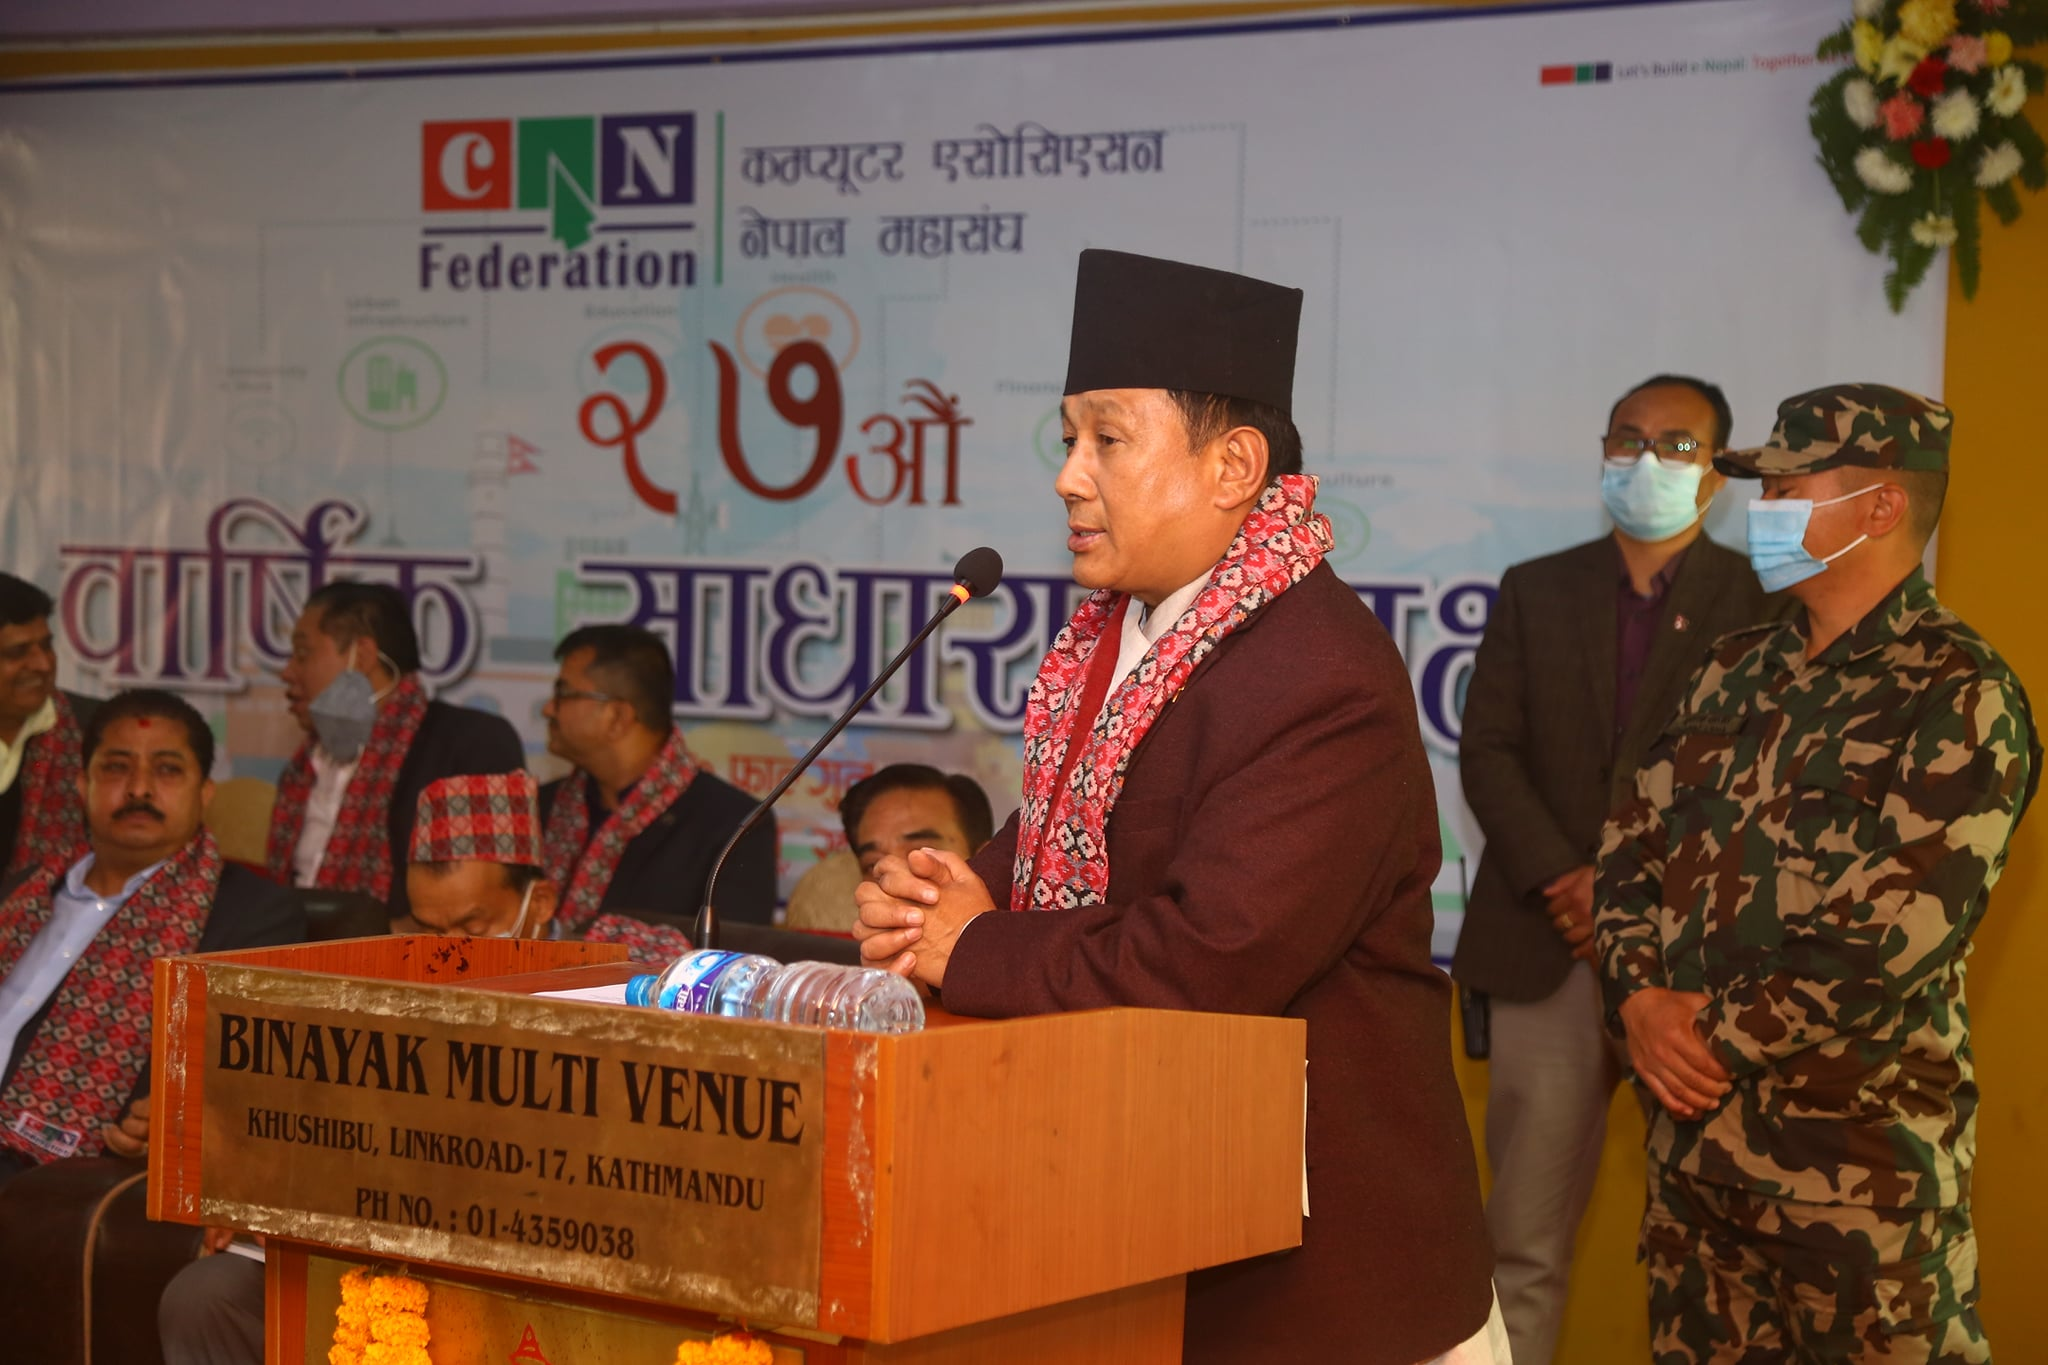 Parbat Gurung -Minister of Communication and Information Technology of Nepal Government